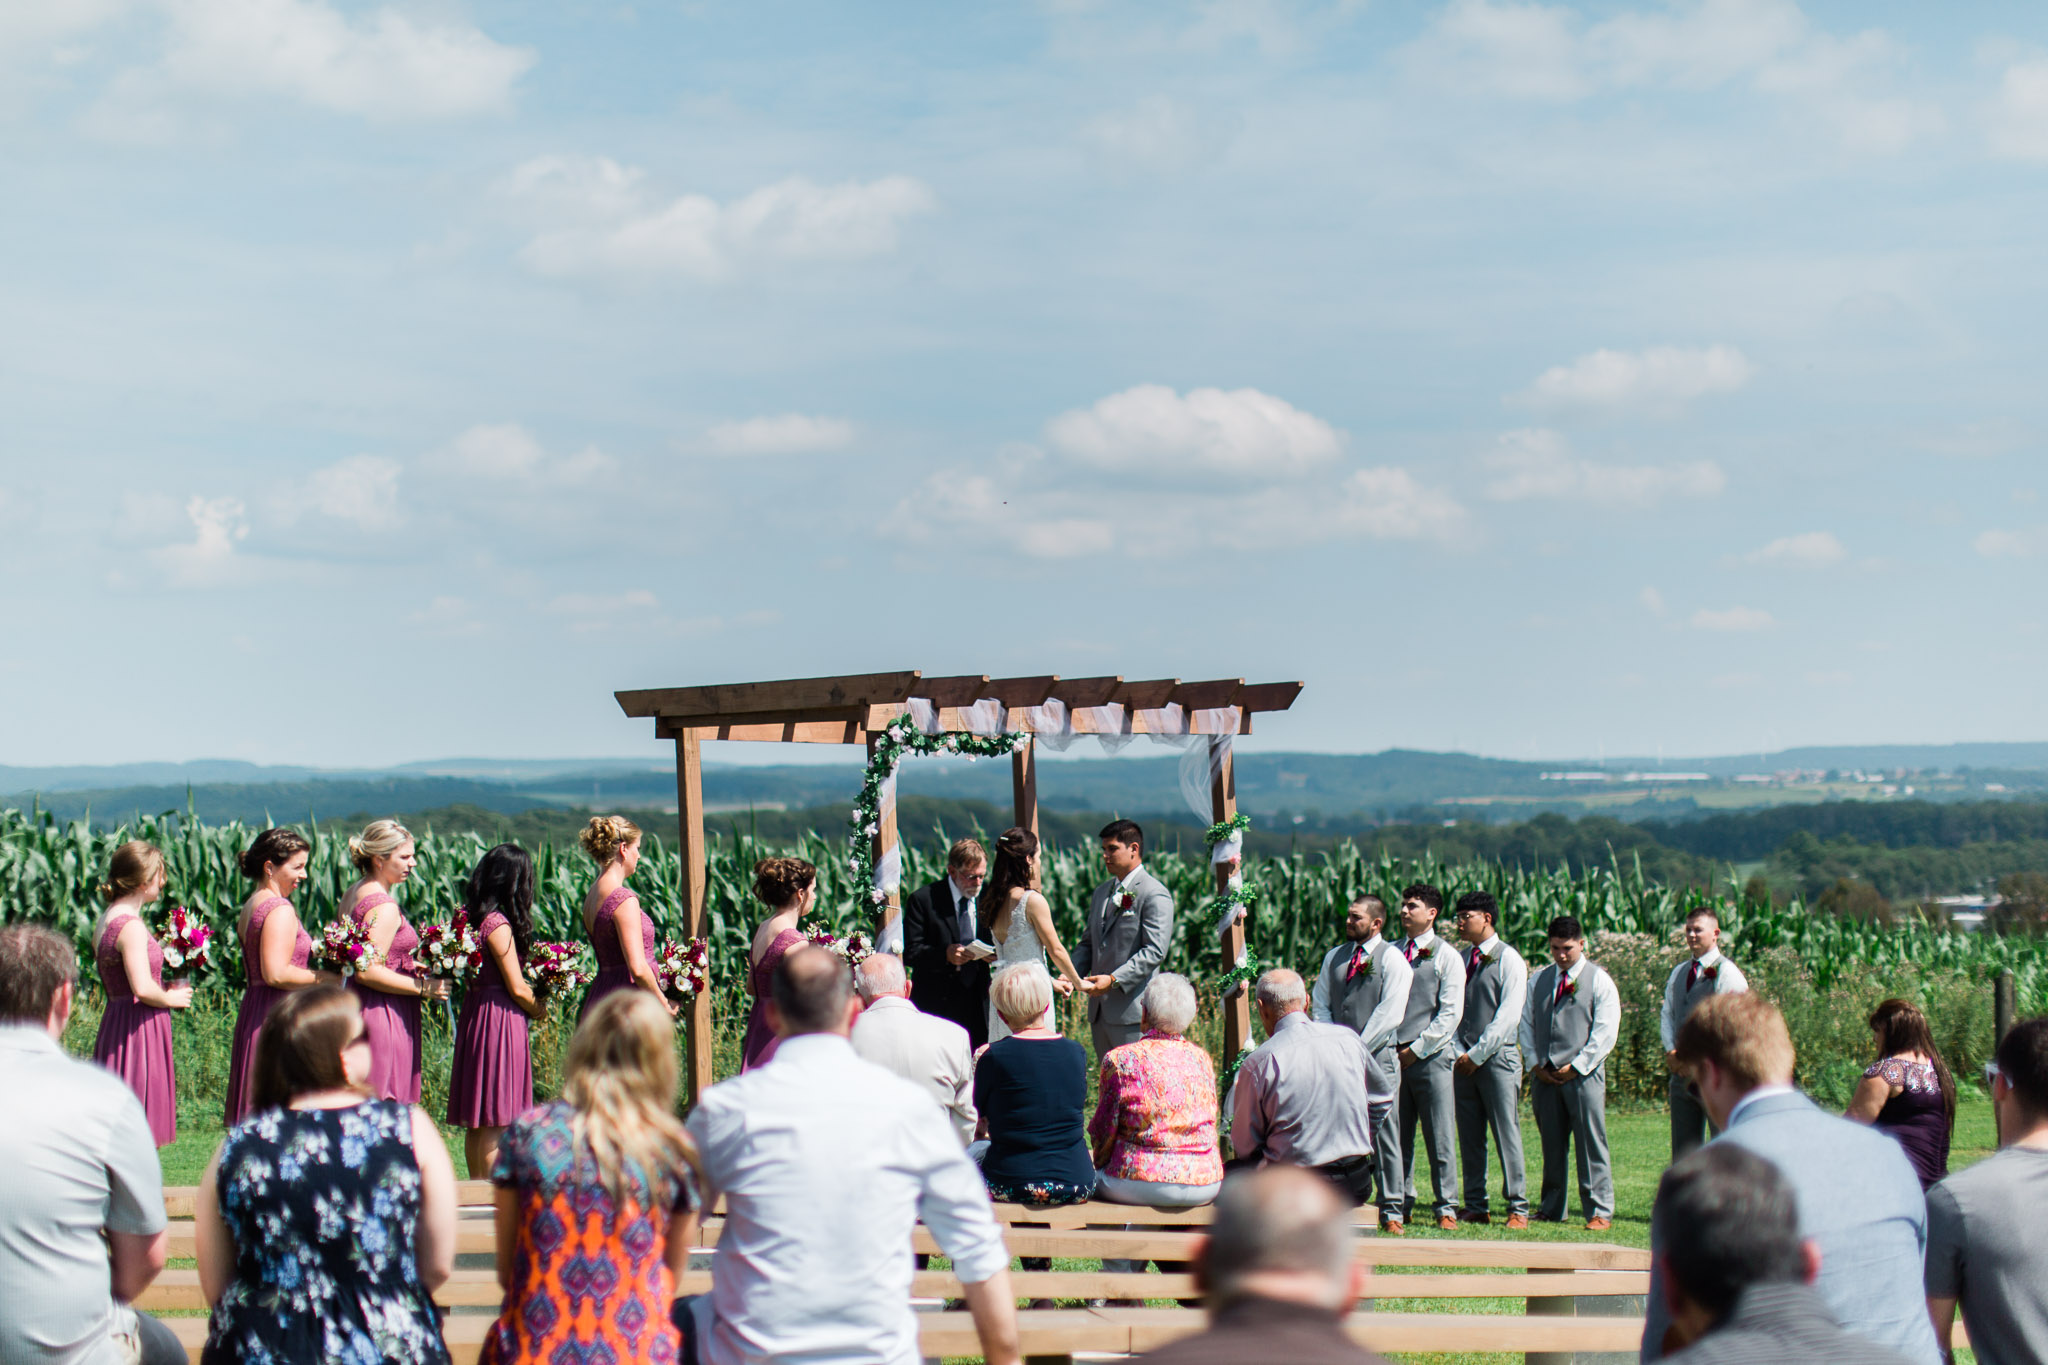 Outdoor Ceremony, Pittsburgh Wedding Photographer, The Event Barn at Highland Farms, Somerset PA-5114.jpg